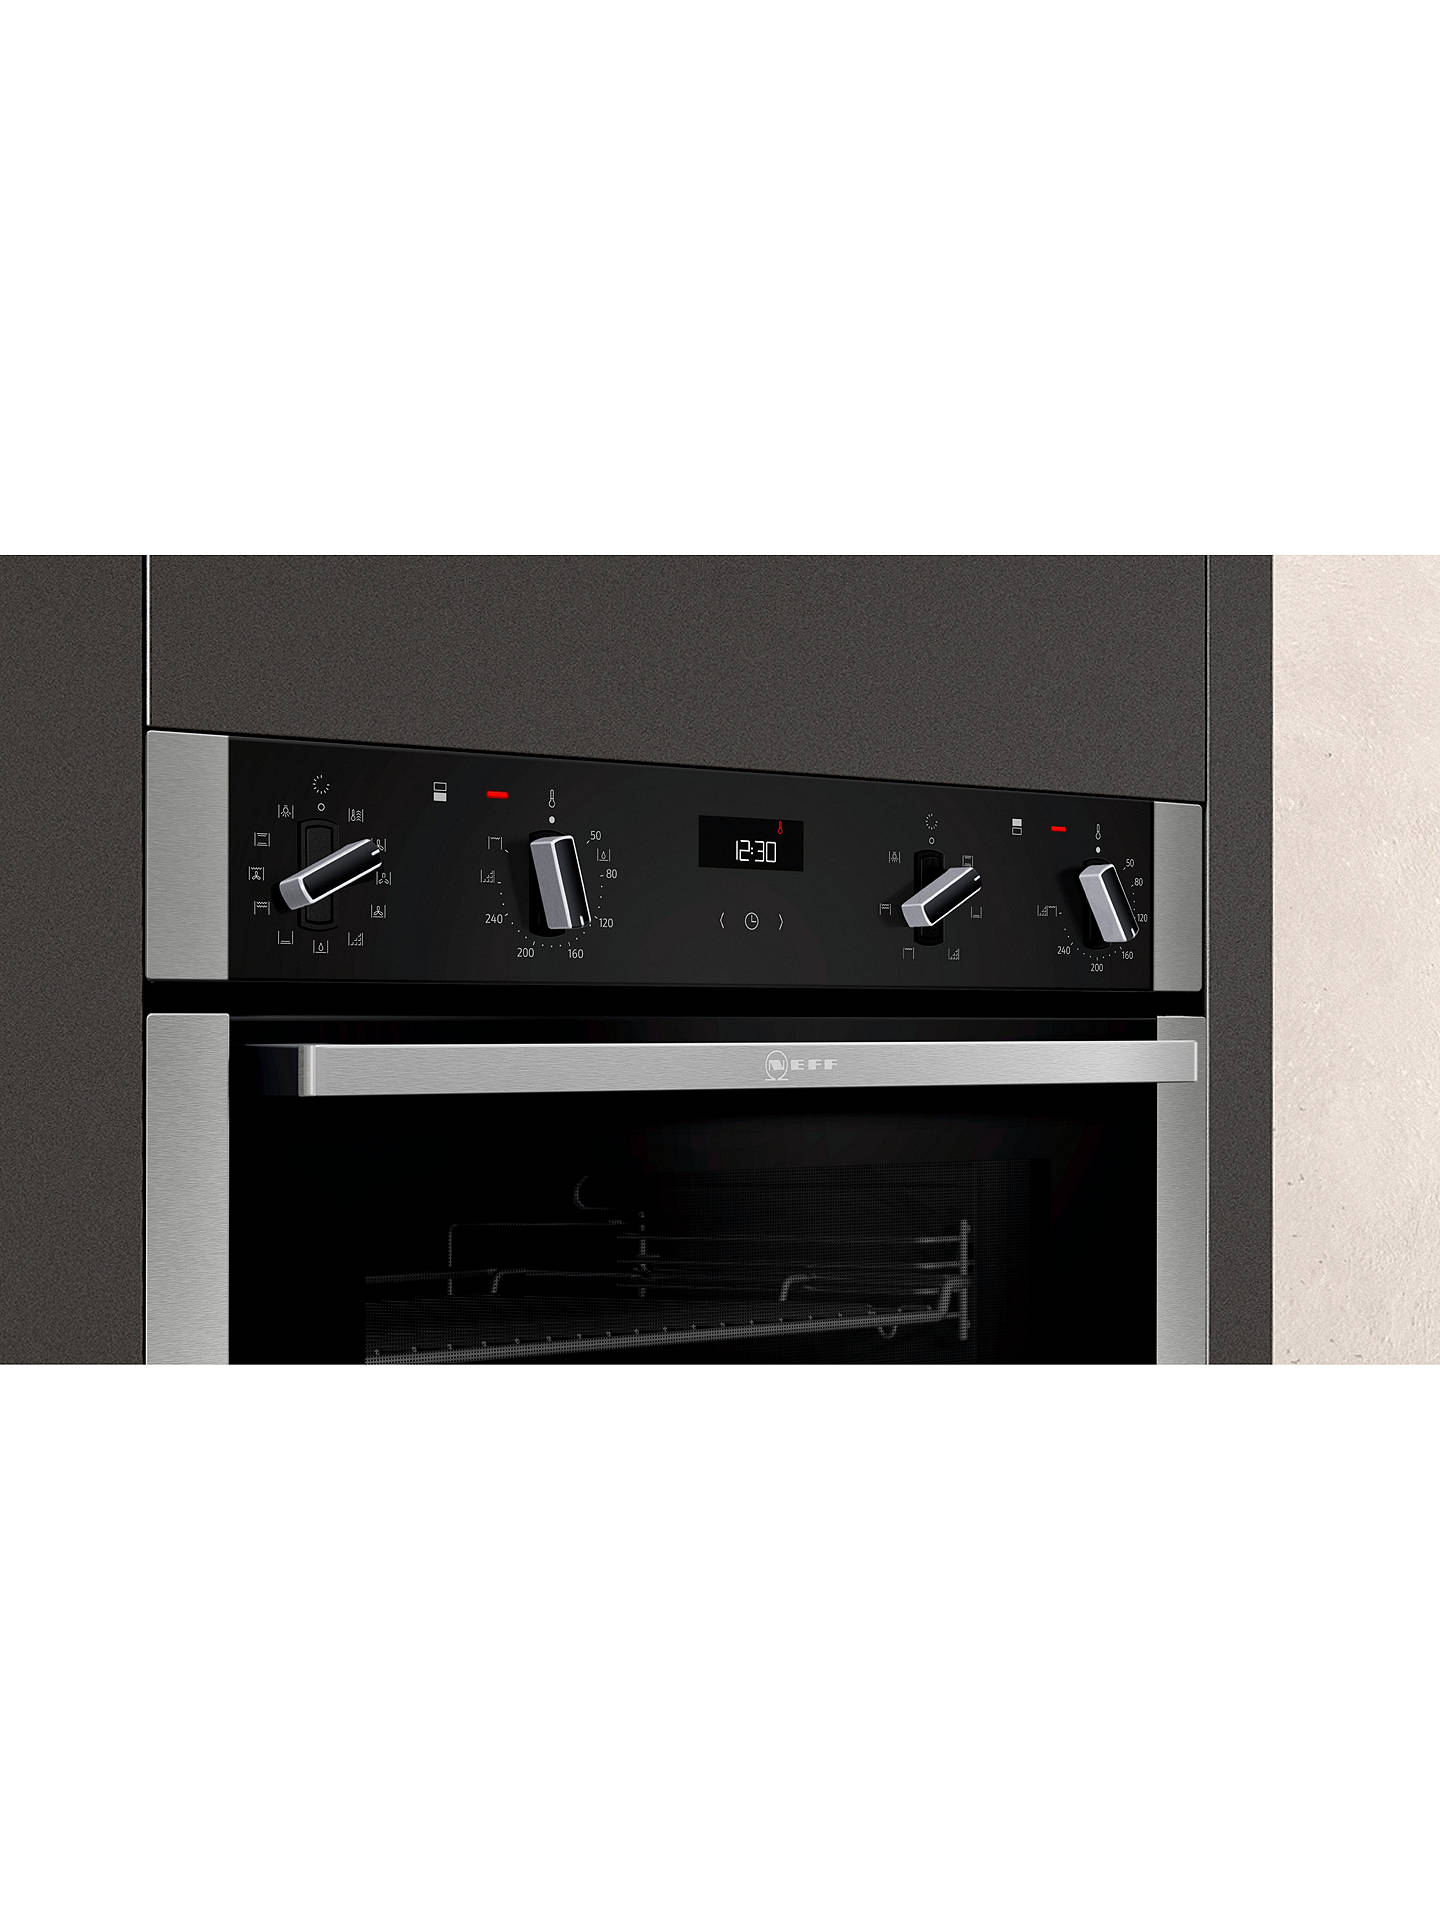 Buy Neff U2ACM7HN0B Pyrolytic Built-In Double Oven, Stainless Steel Online at johnlewis.com